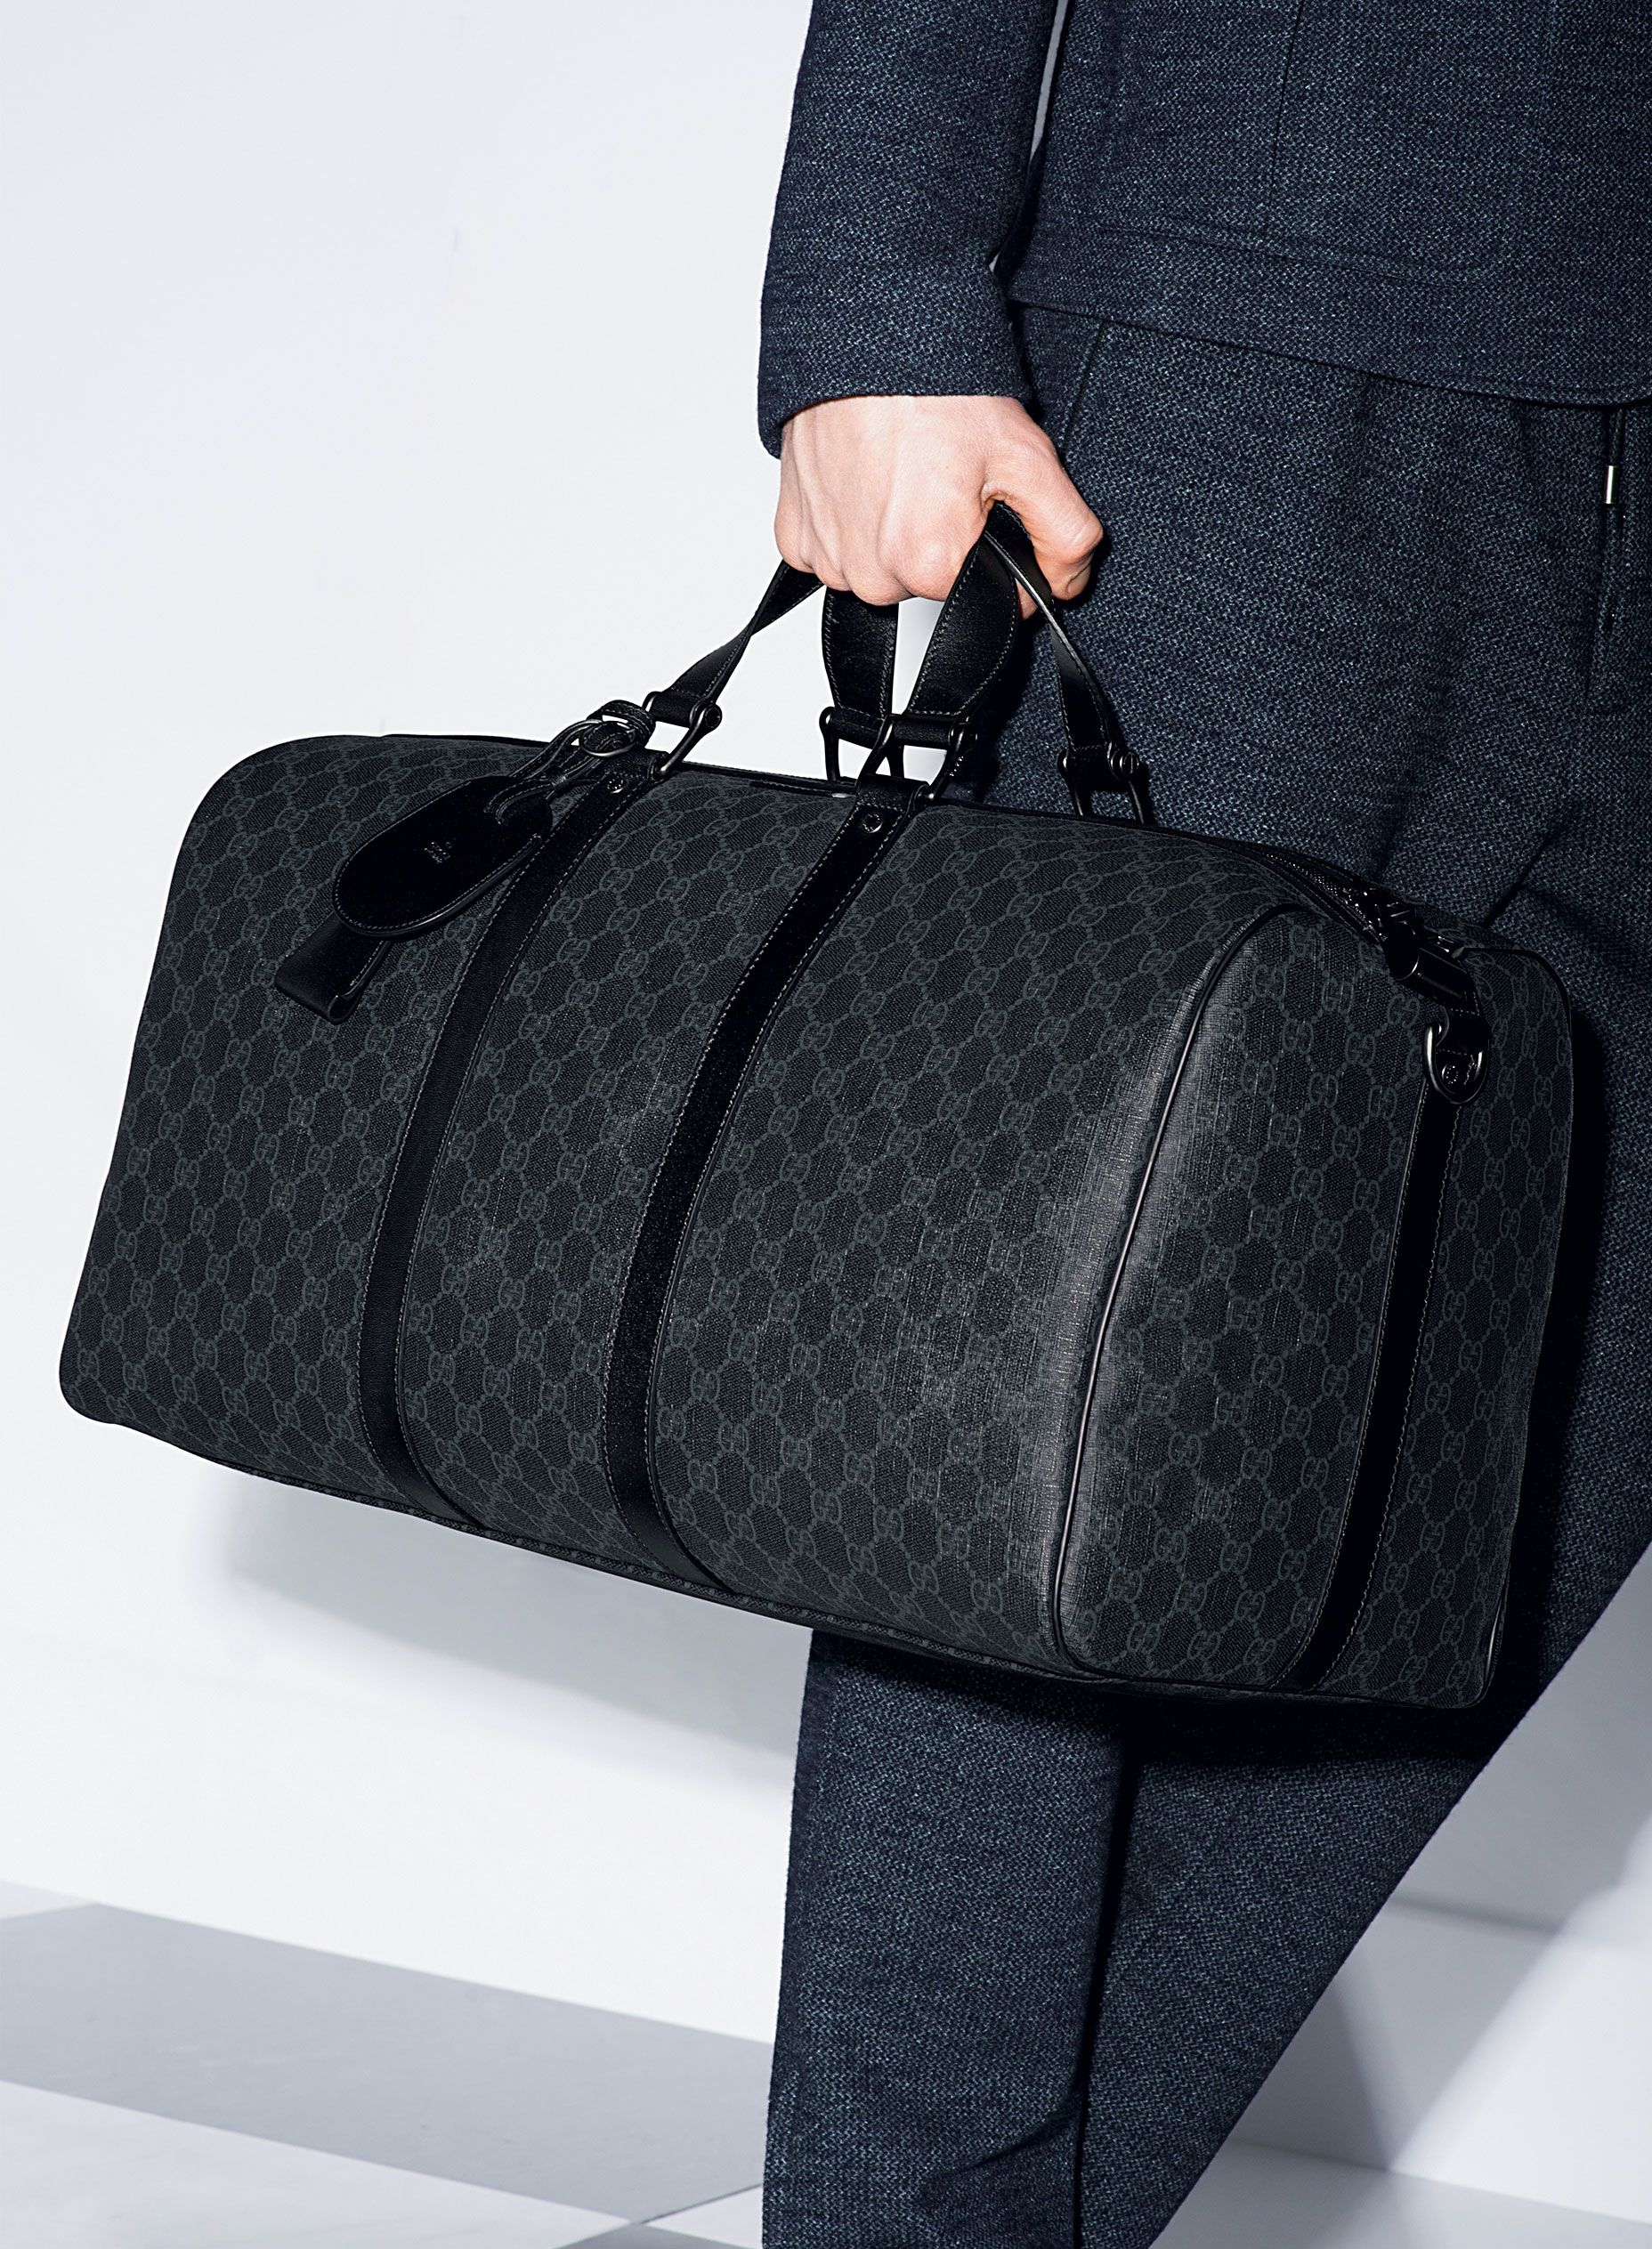 1f0250d8d60a Gucci Pre-Fall 2014  GG Supreme Canvas Carry-On Duffel Bag  duffel  bag   menstyle  menswear